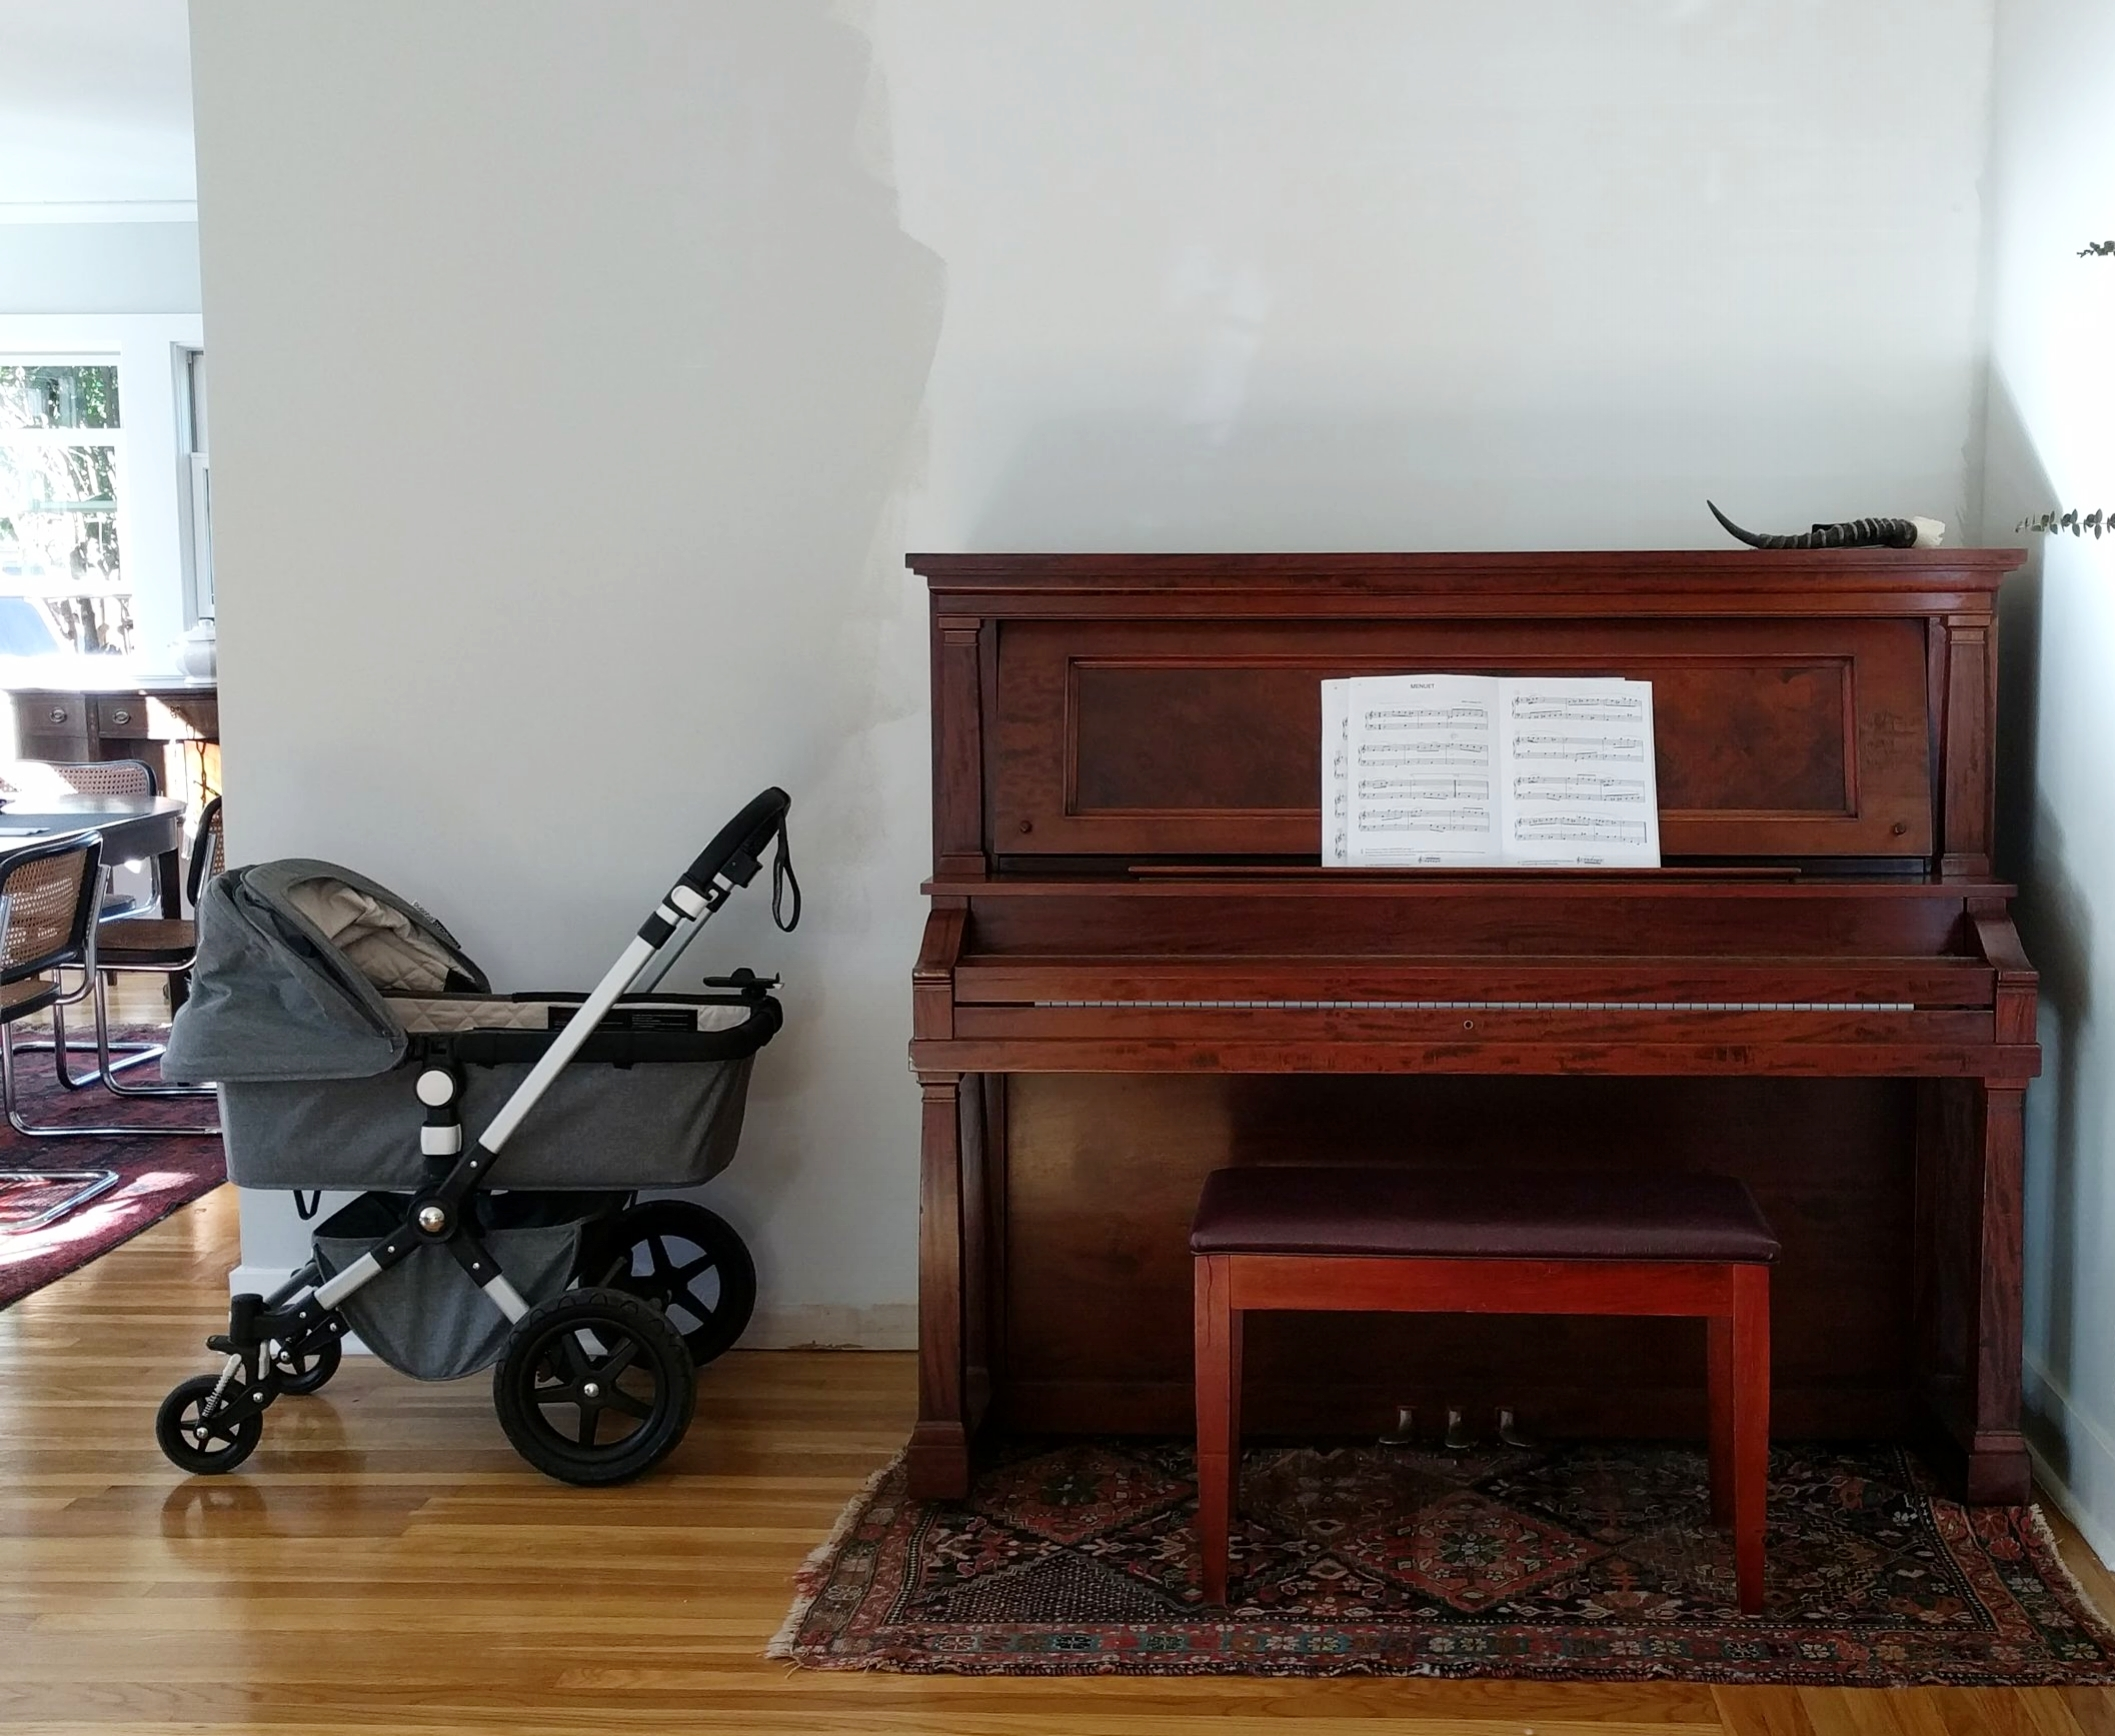 Finishing the piano nook took seven weeks longer than expected: first, the lead time for the cabinets was a month longer than I thought it would be; then,the crown molding over the cabinet was delayed by three weeks. We had to hire piano movers to repeatedly move the piano in and out of this spot.